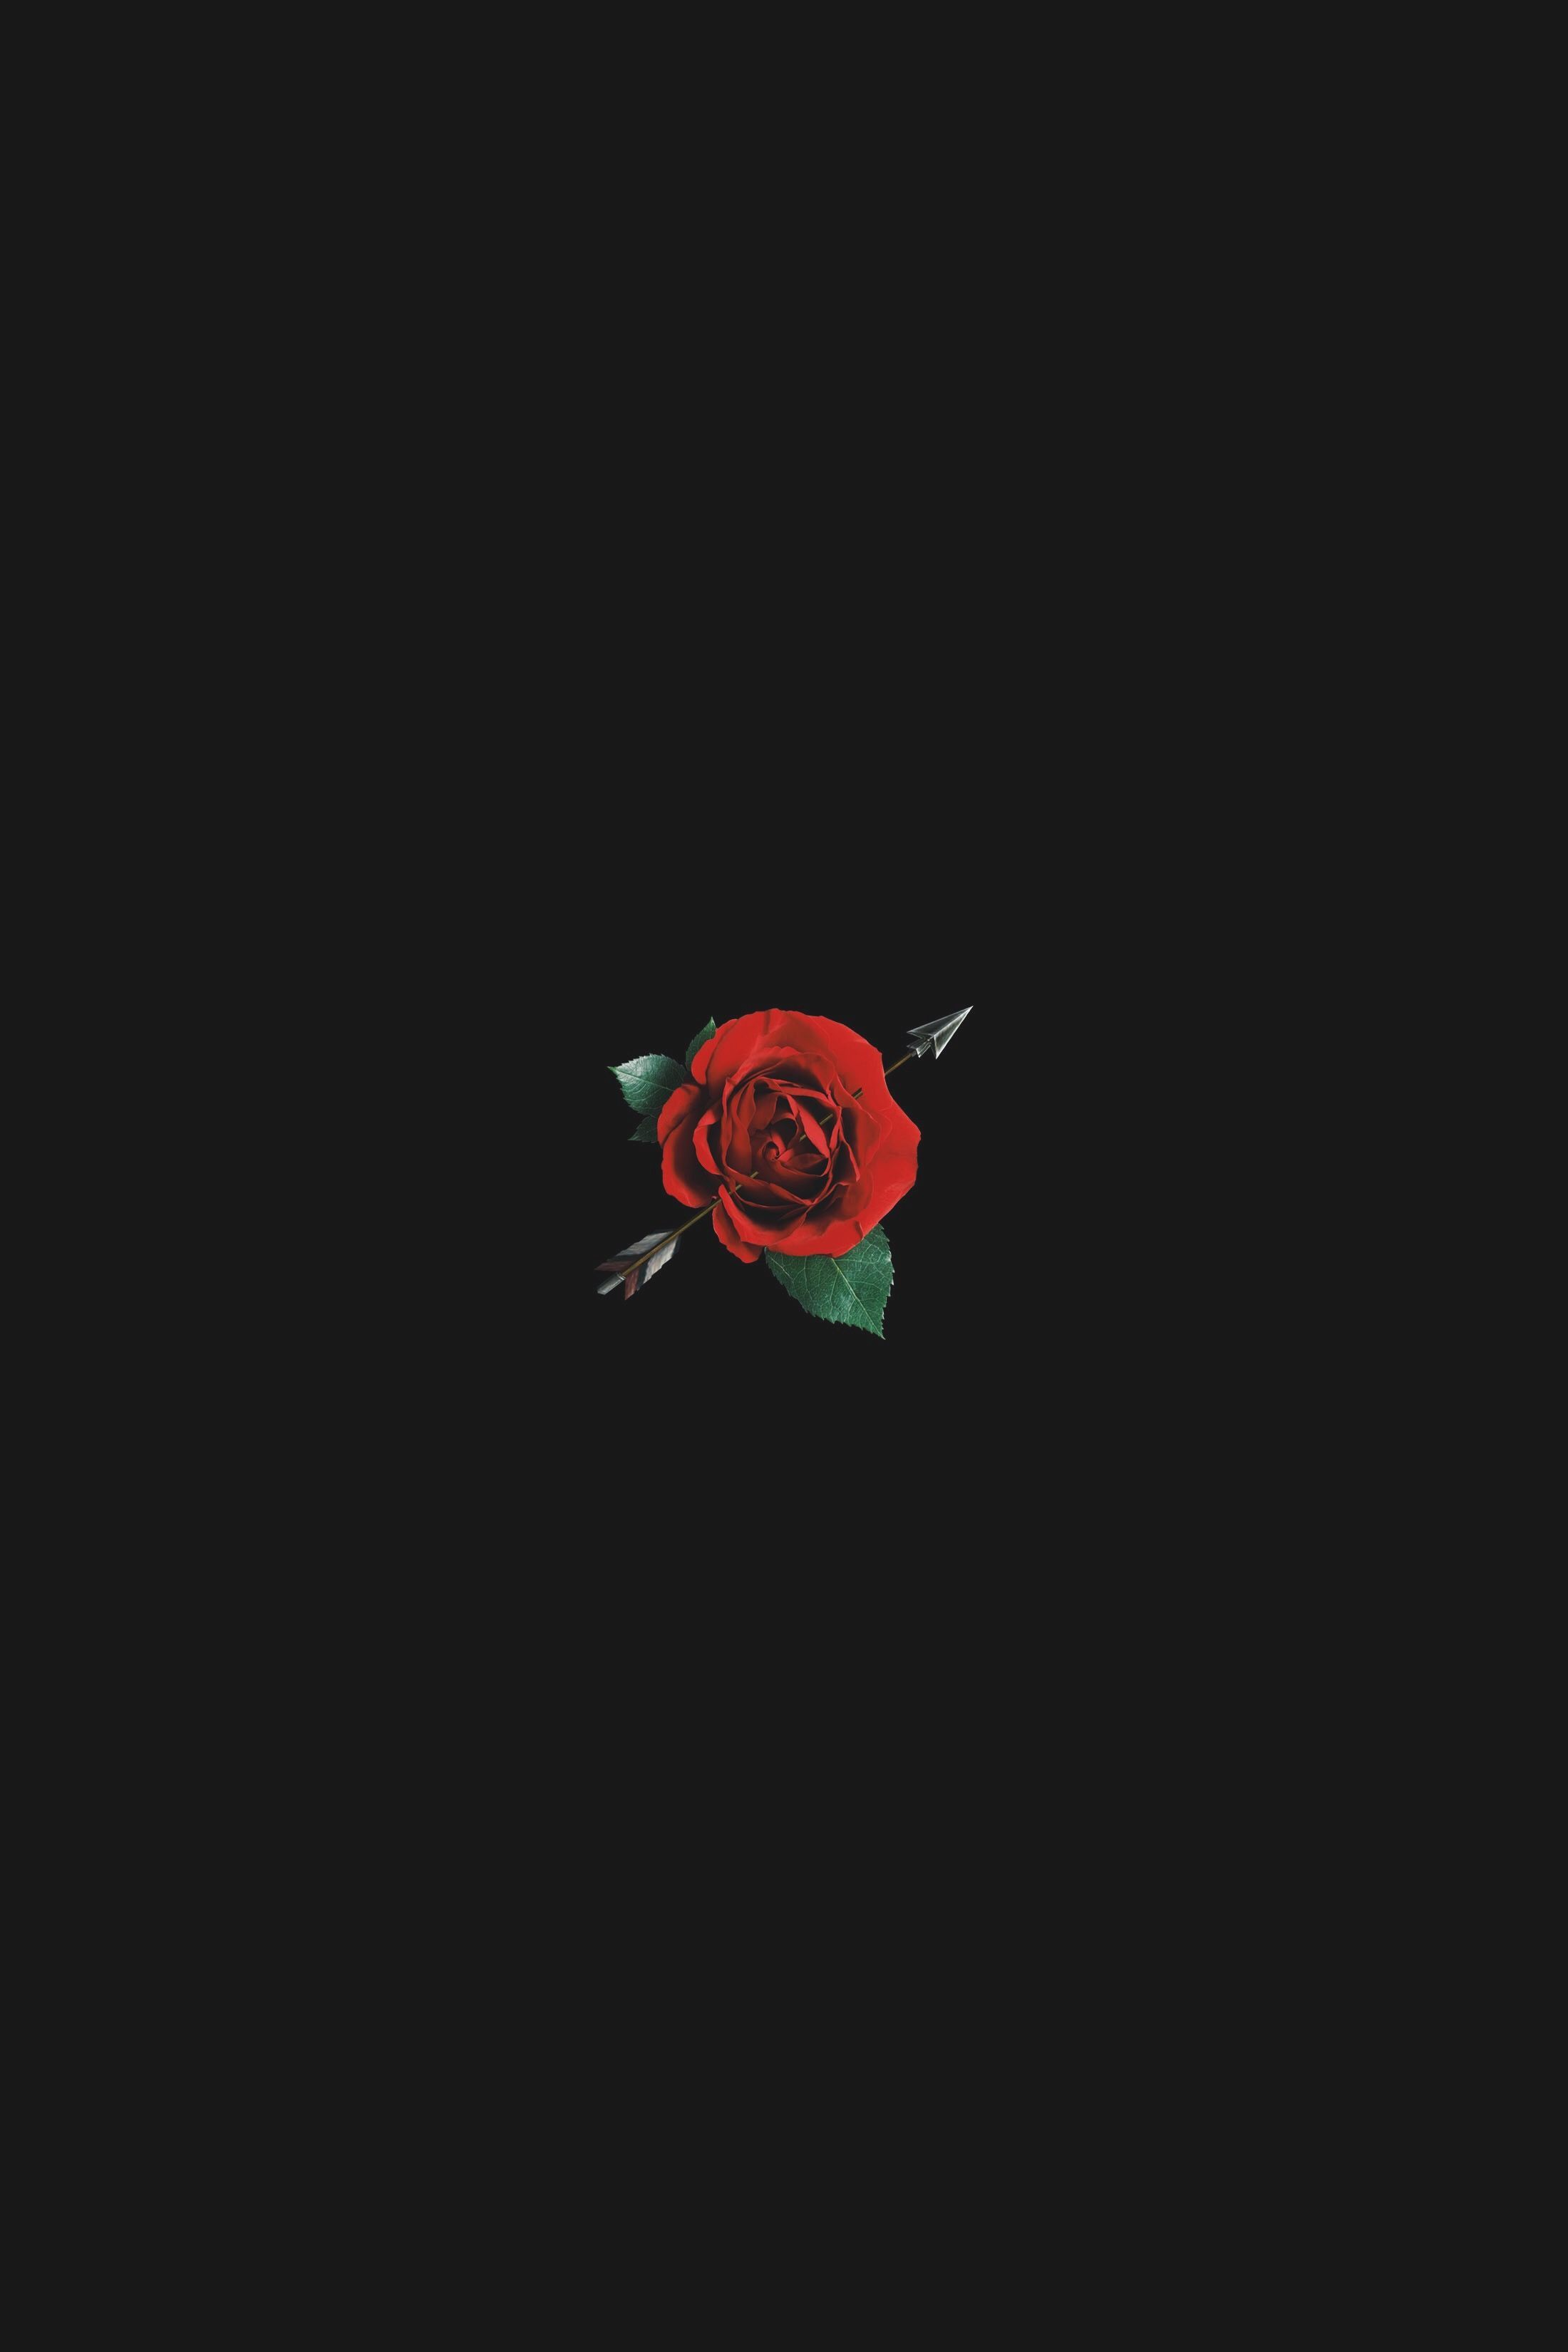 Black Rose Aesthetic Wallpapers Top Free Black Rose Aesthetic Backgrounds Wallpaperaccess